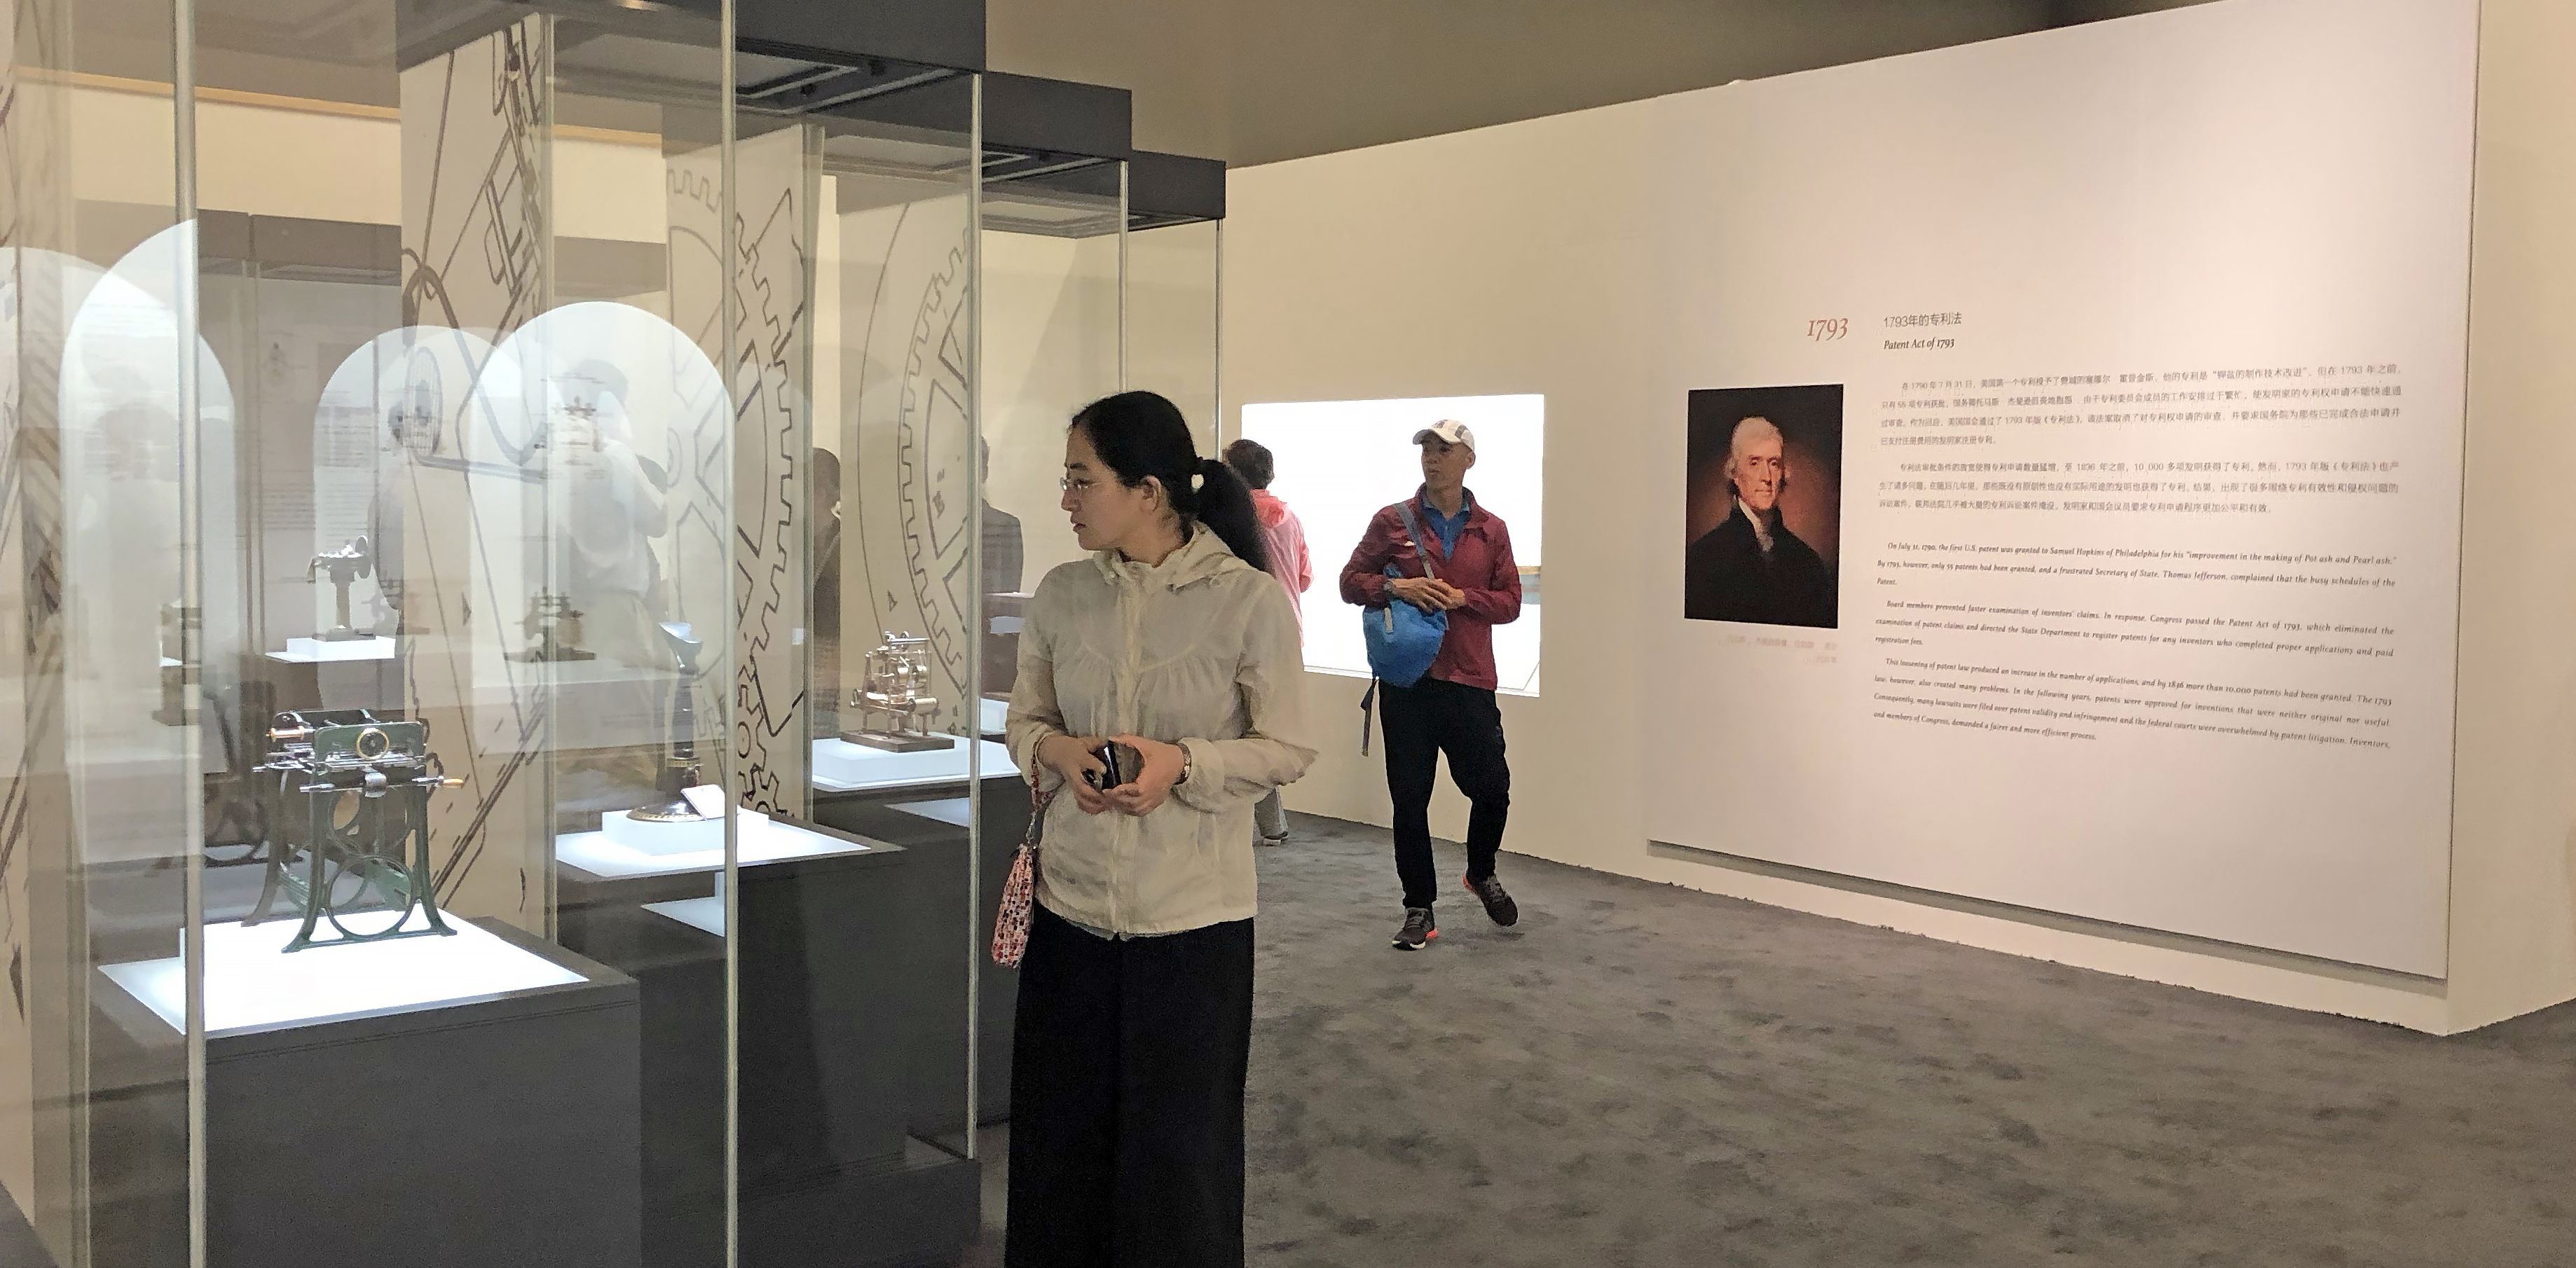 Visitors at the National Museum of China view Hagley's patent models.